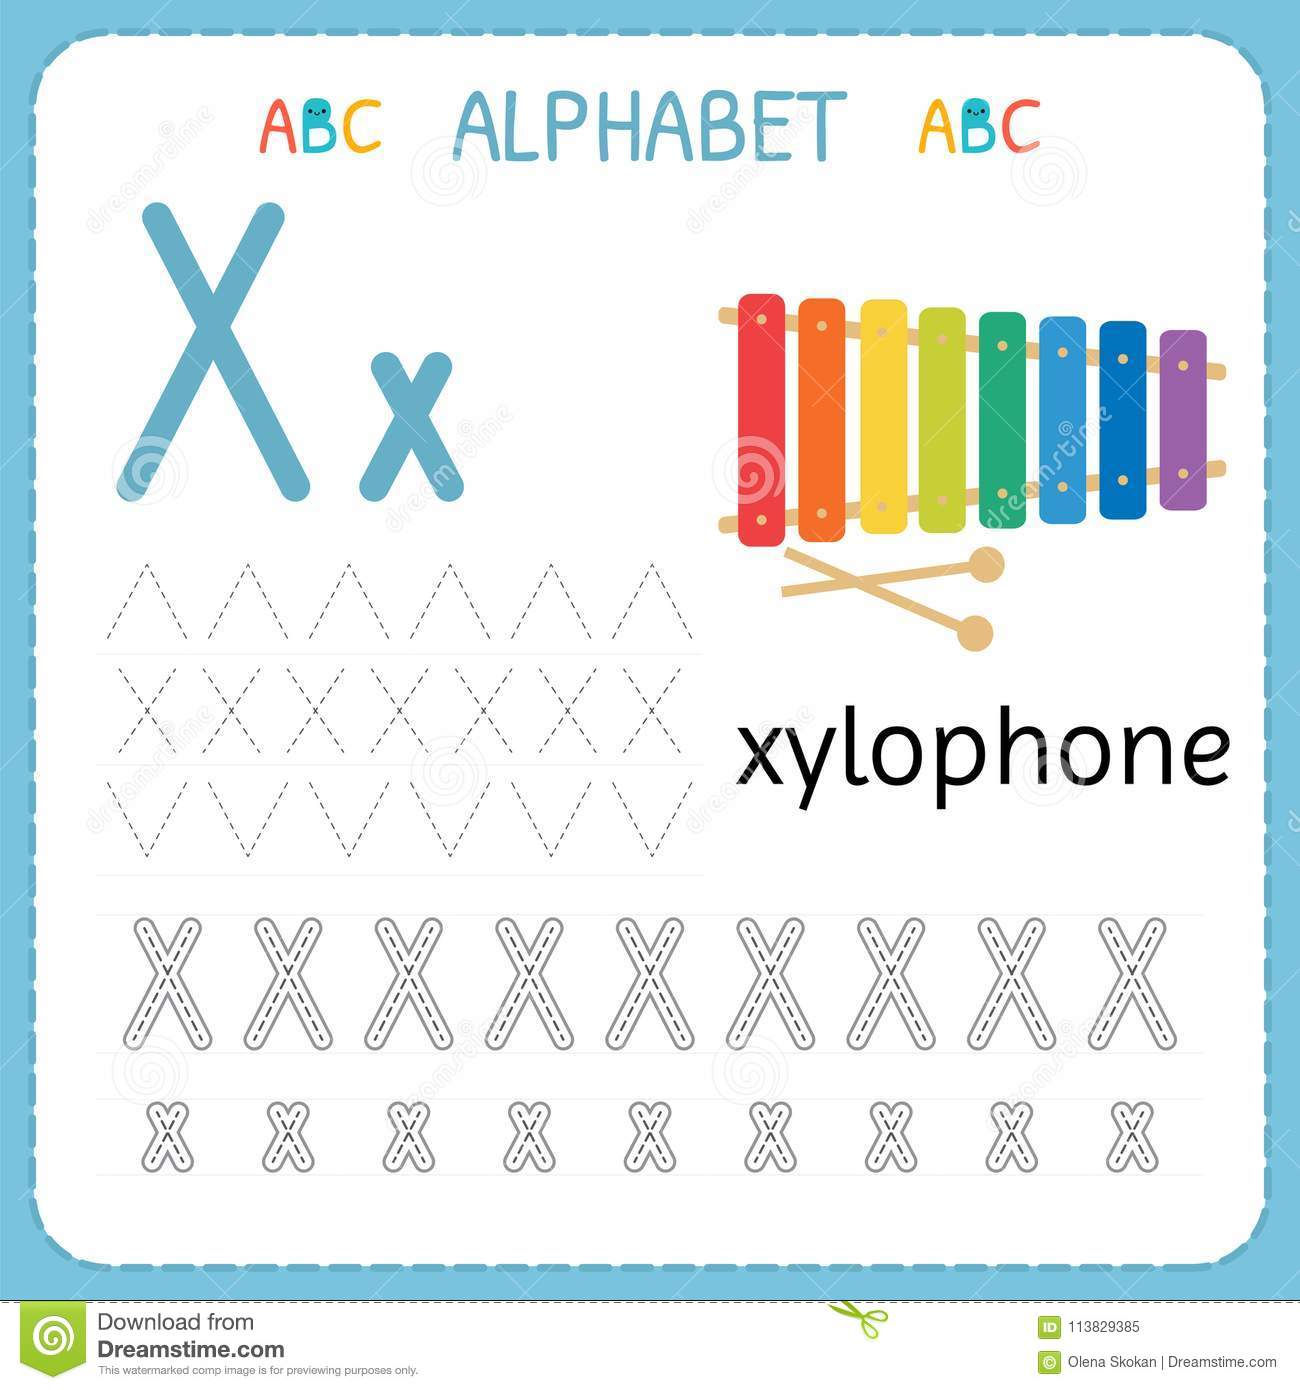 Alphabet Tracing Worksheet For Preschool And Kindergarten Writing Practice Letter X Exercises